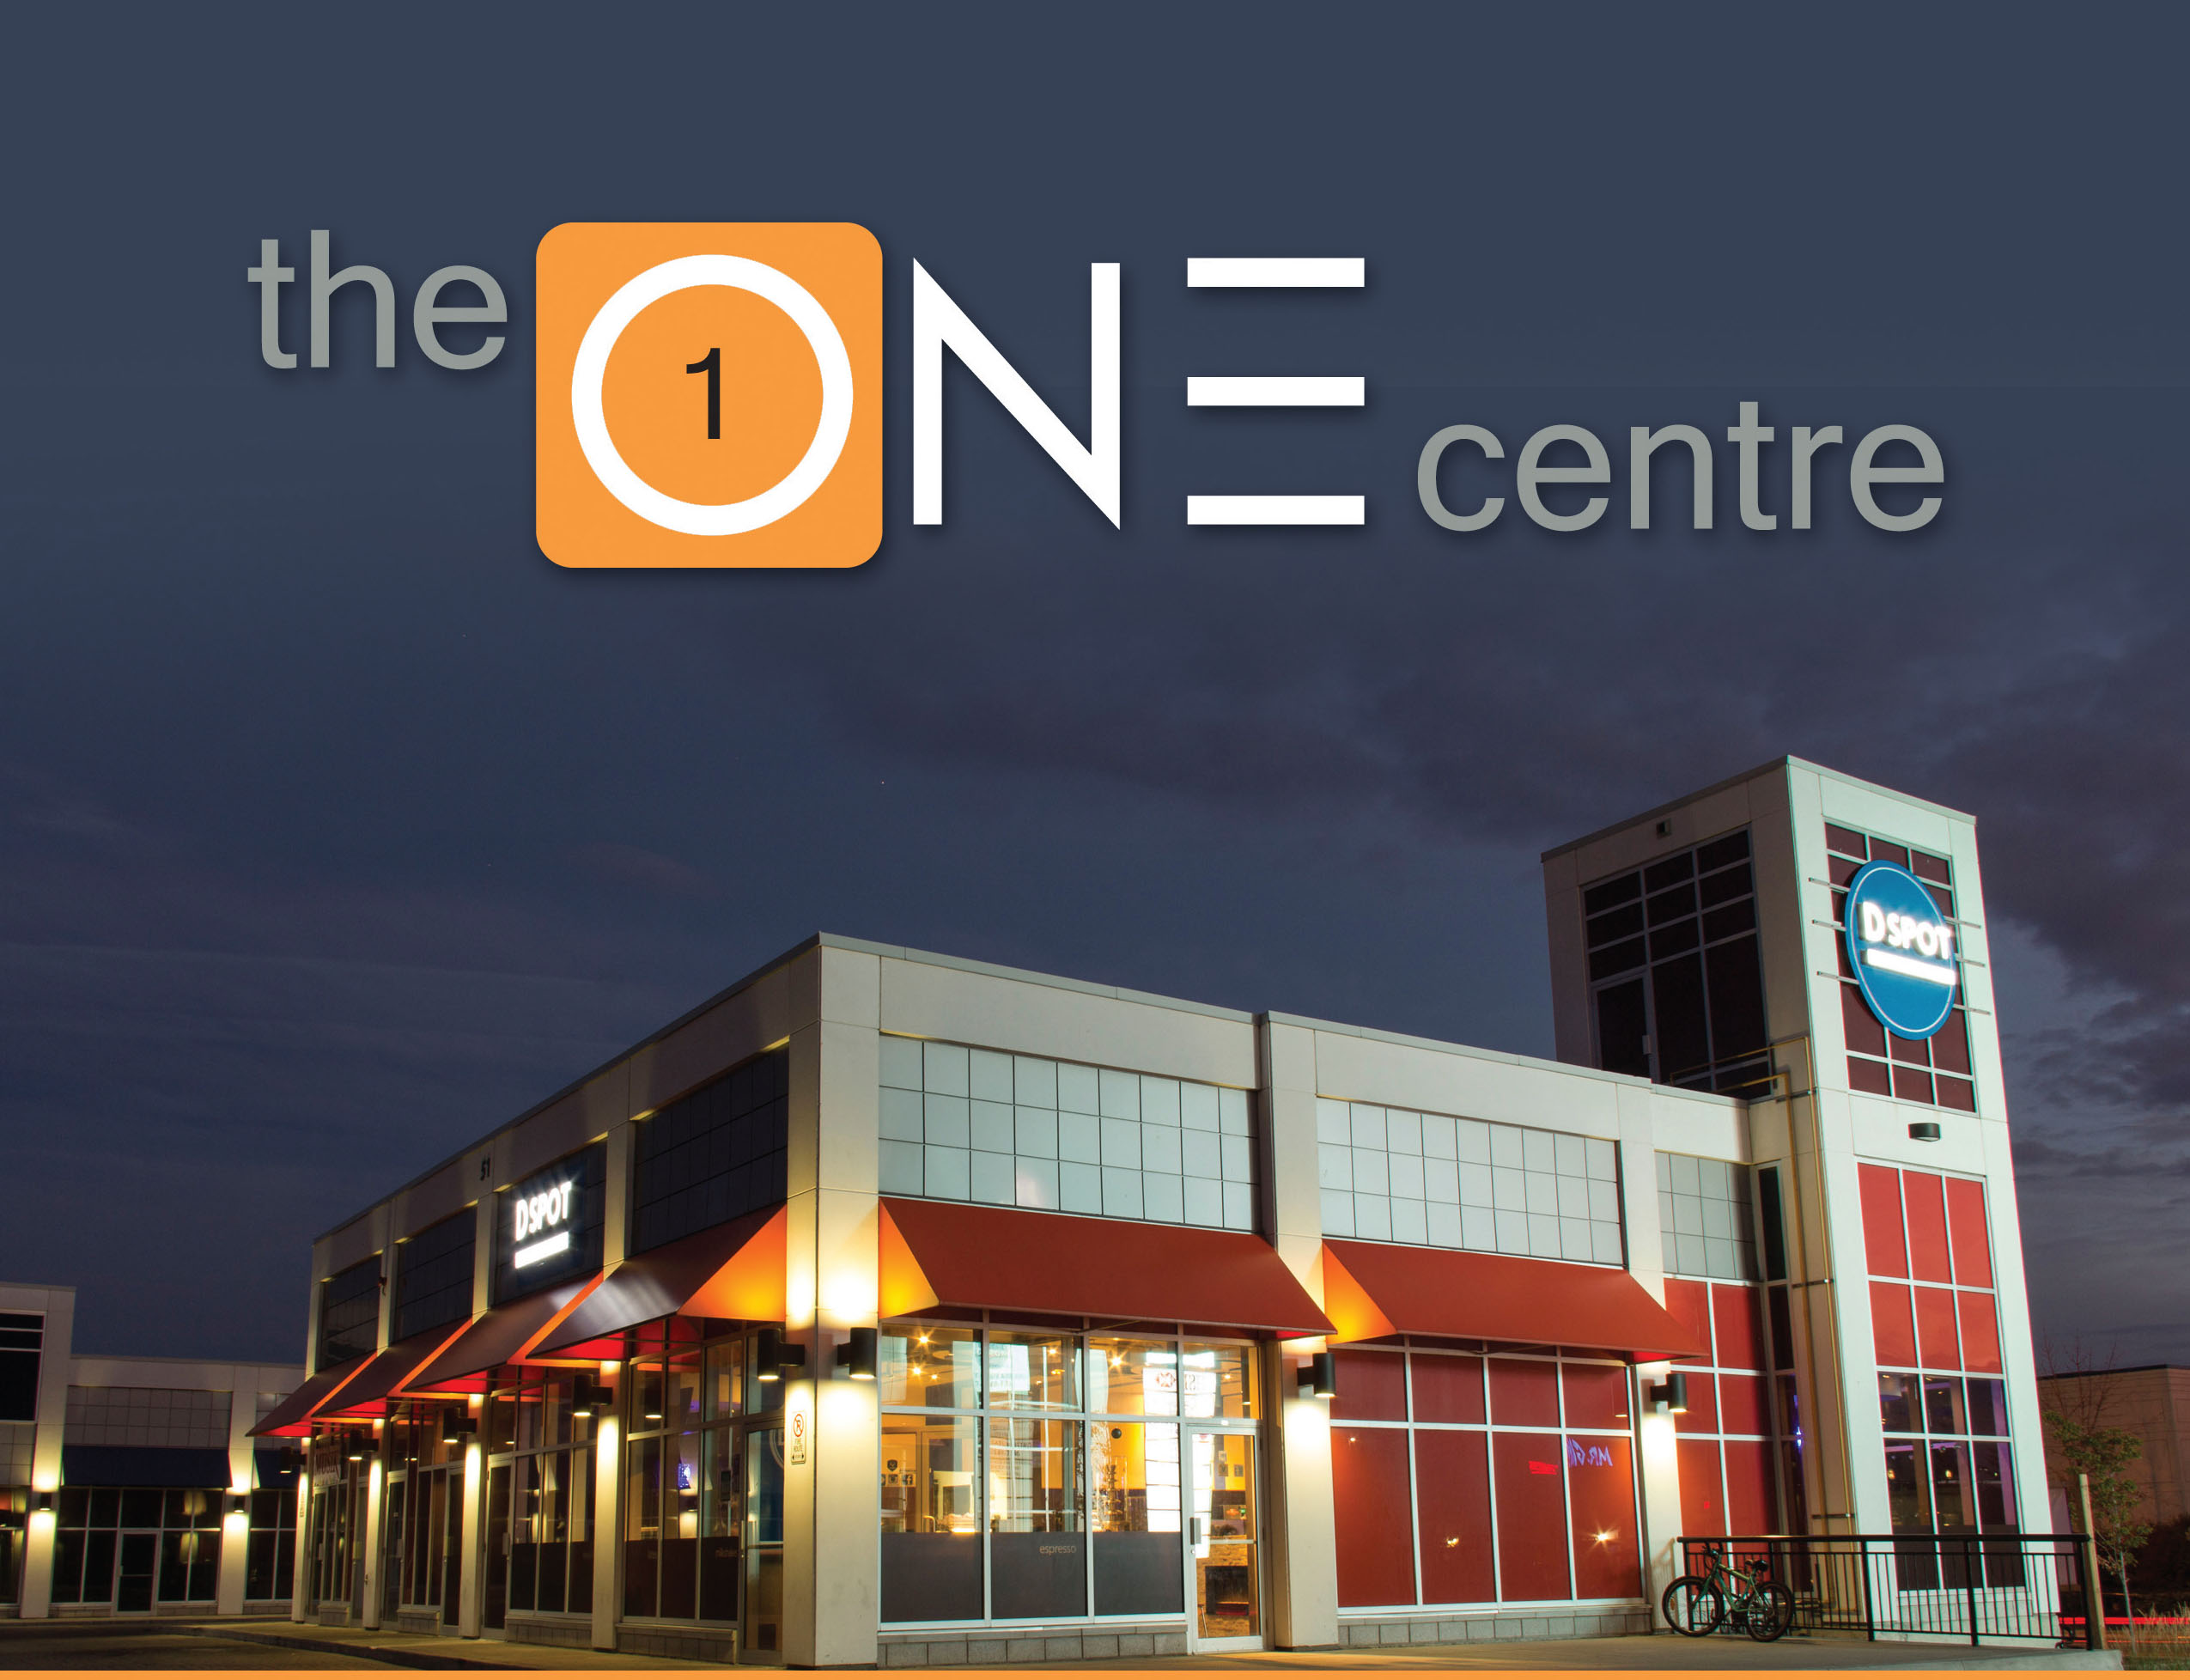 The One Centre - Retail Plaza